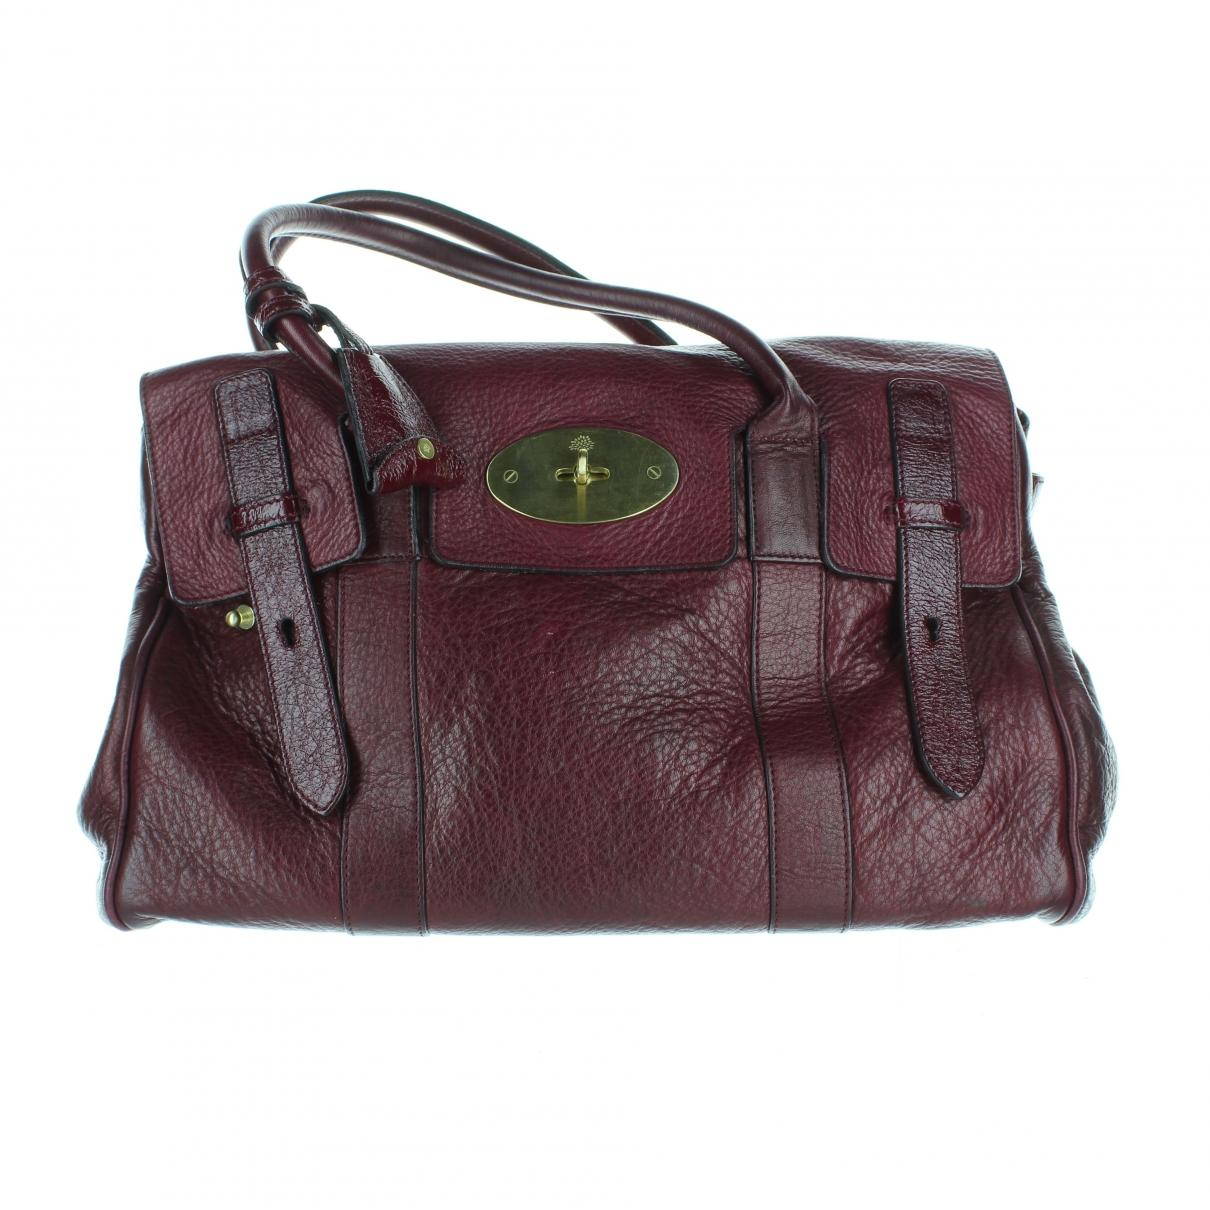 Mulberry. Women s Purple Bayswater Leather Handbag. £700 £467 From Vestiaire  Collective 642d81d366df6